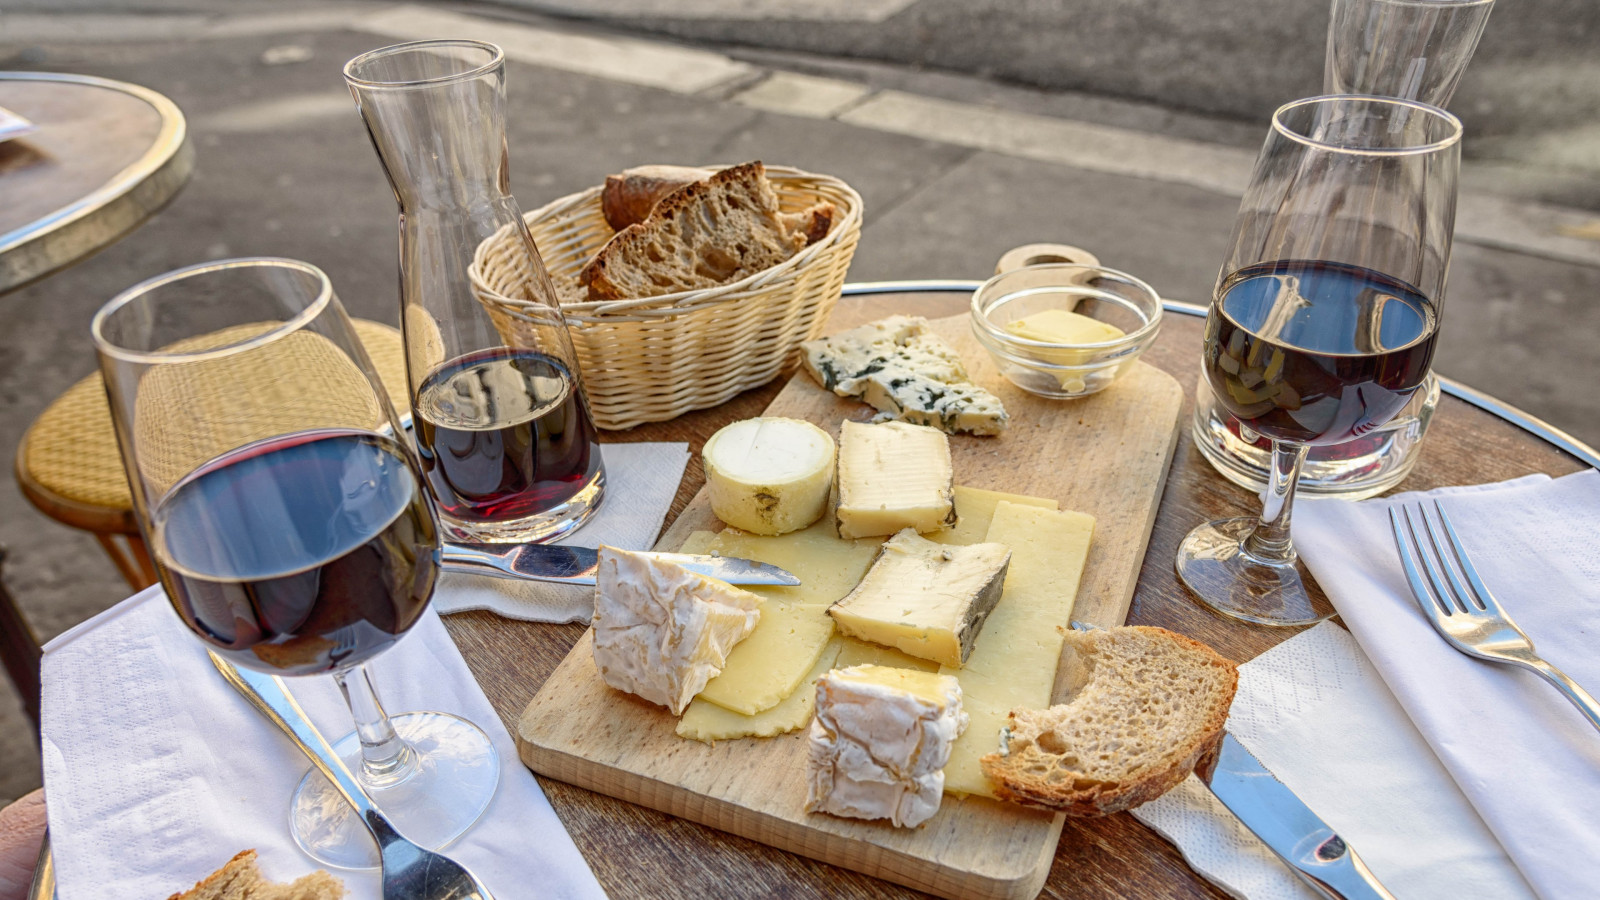 Cheese, wine and bread. Good food and drink wallpaper 1600x900